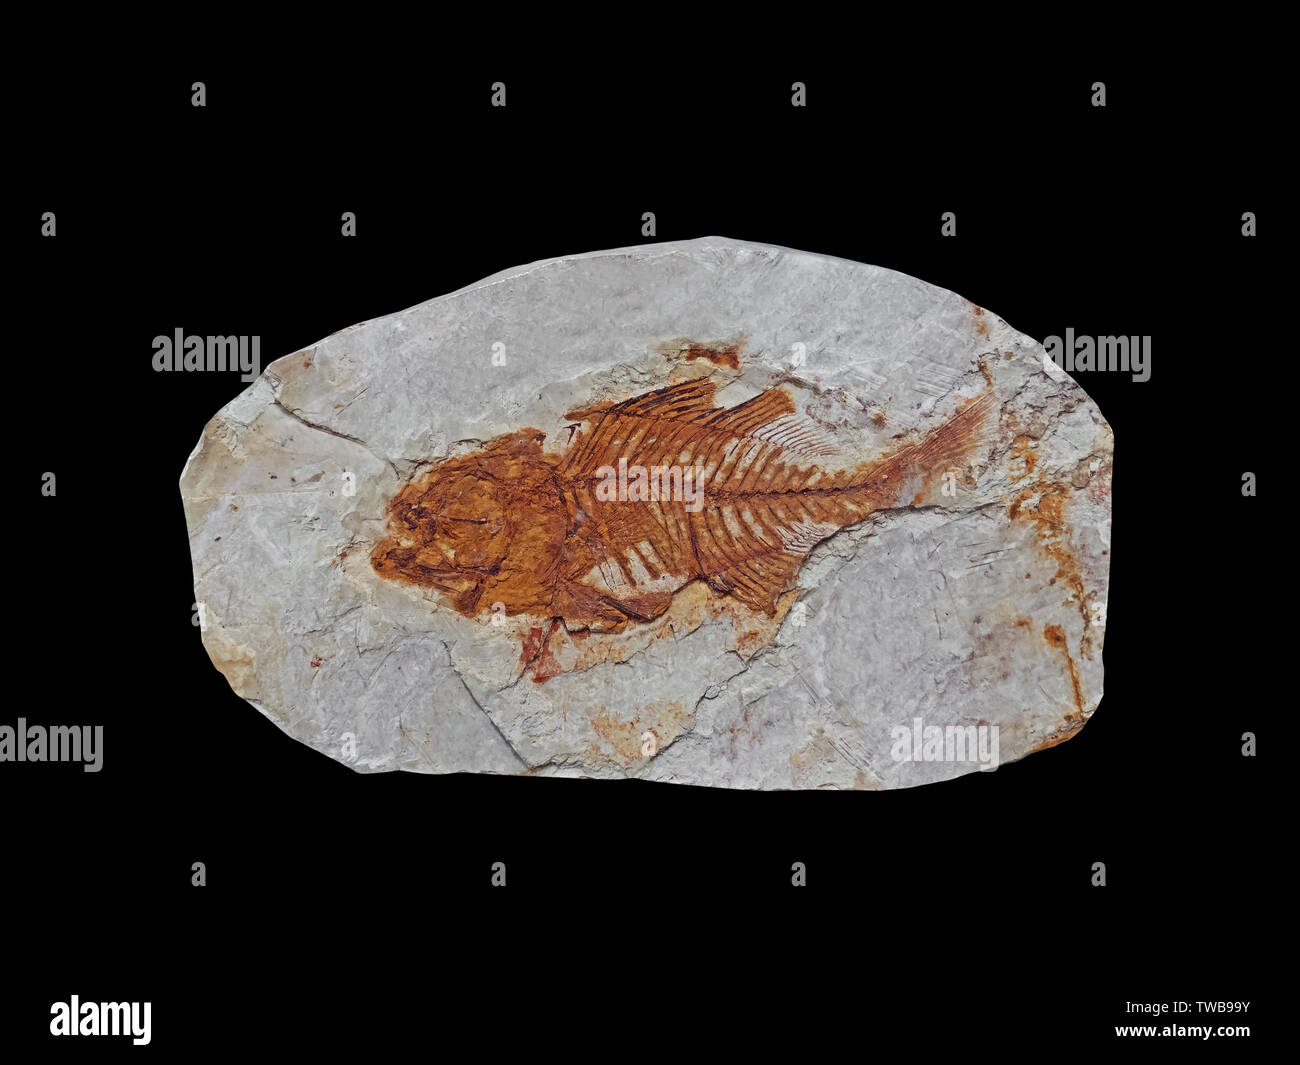 Fish Fossil Isolated on Black Background, Clipping Path Stock Photo